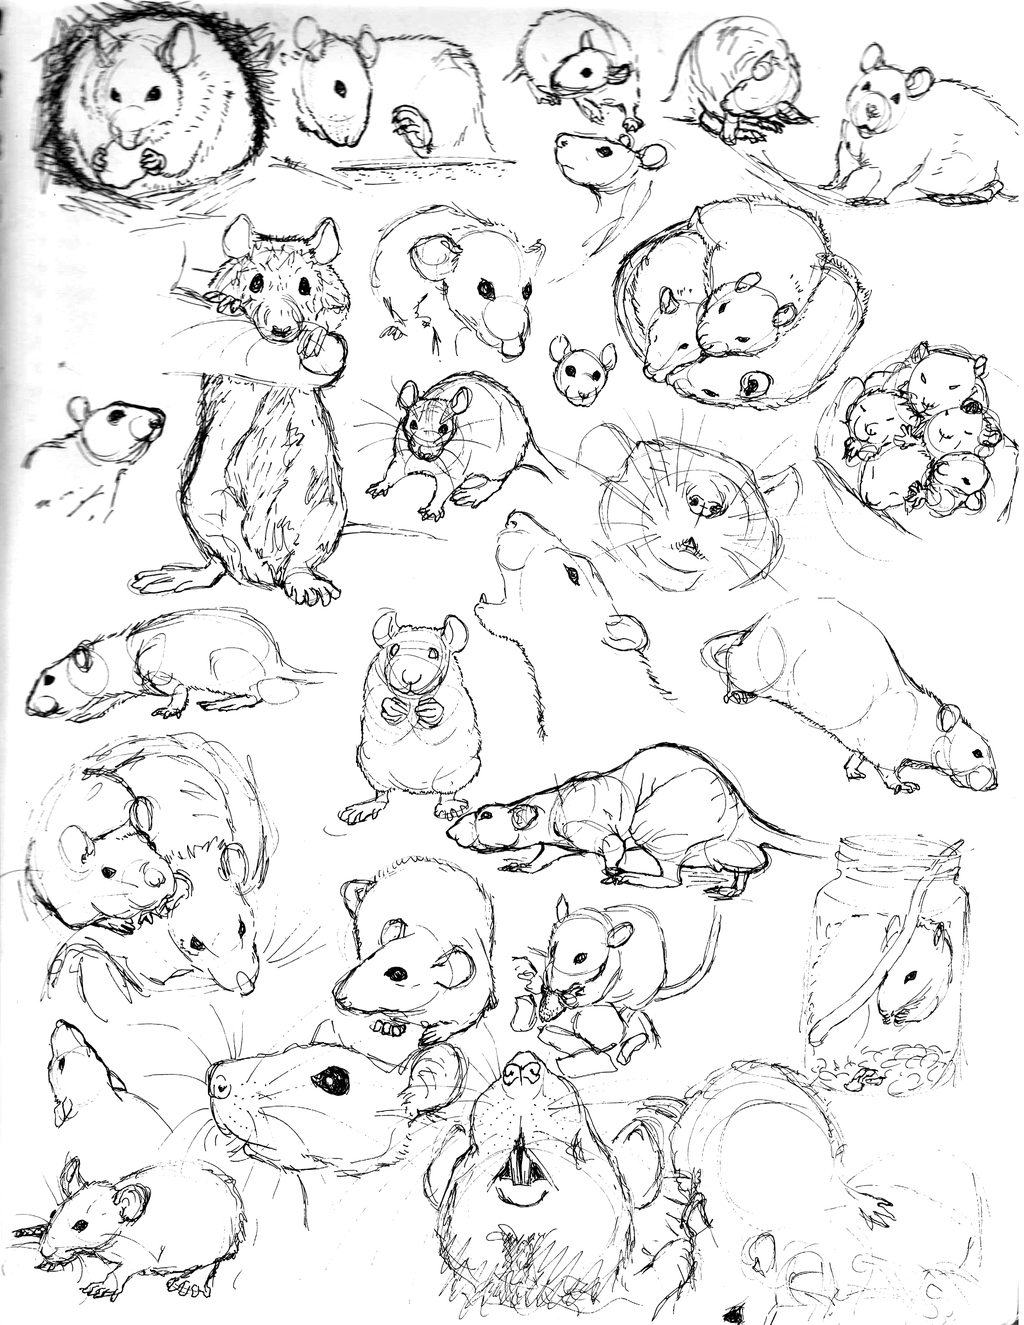 Uncategorized Drawing Of A Rat rat sketch practice 9 by never mor deviantart com on to drawing rats i have been sketching as many pictures of them can find pen and ink in my book if have